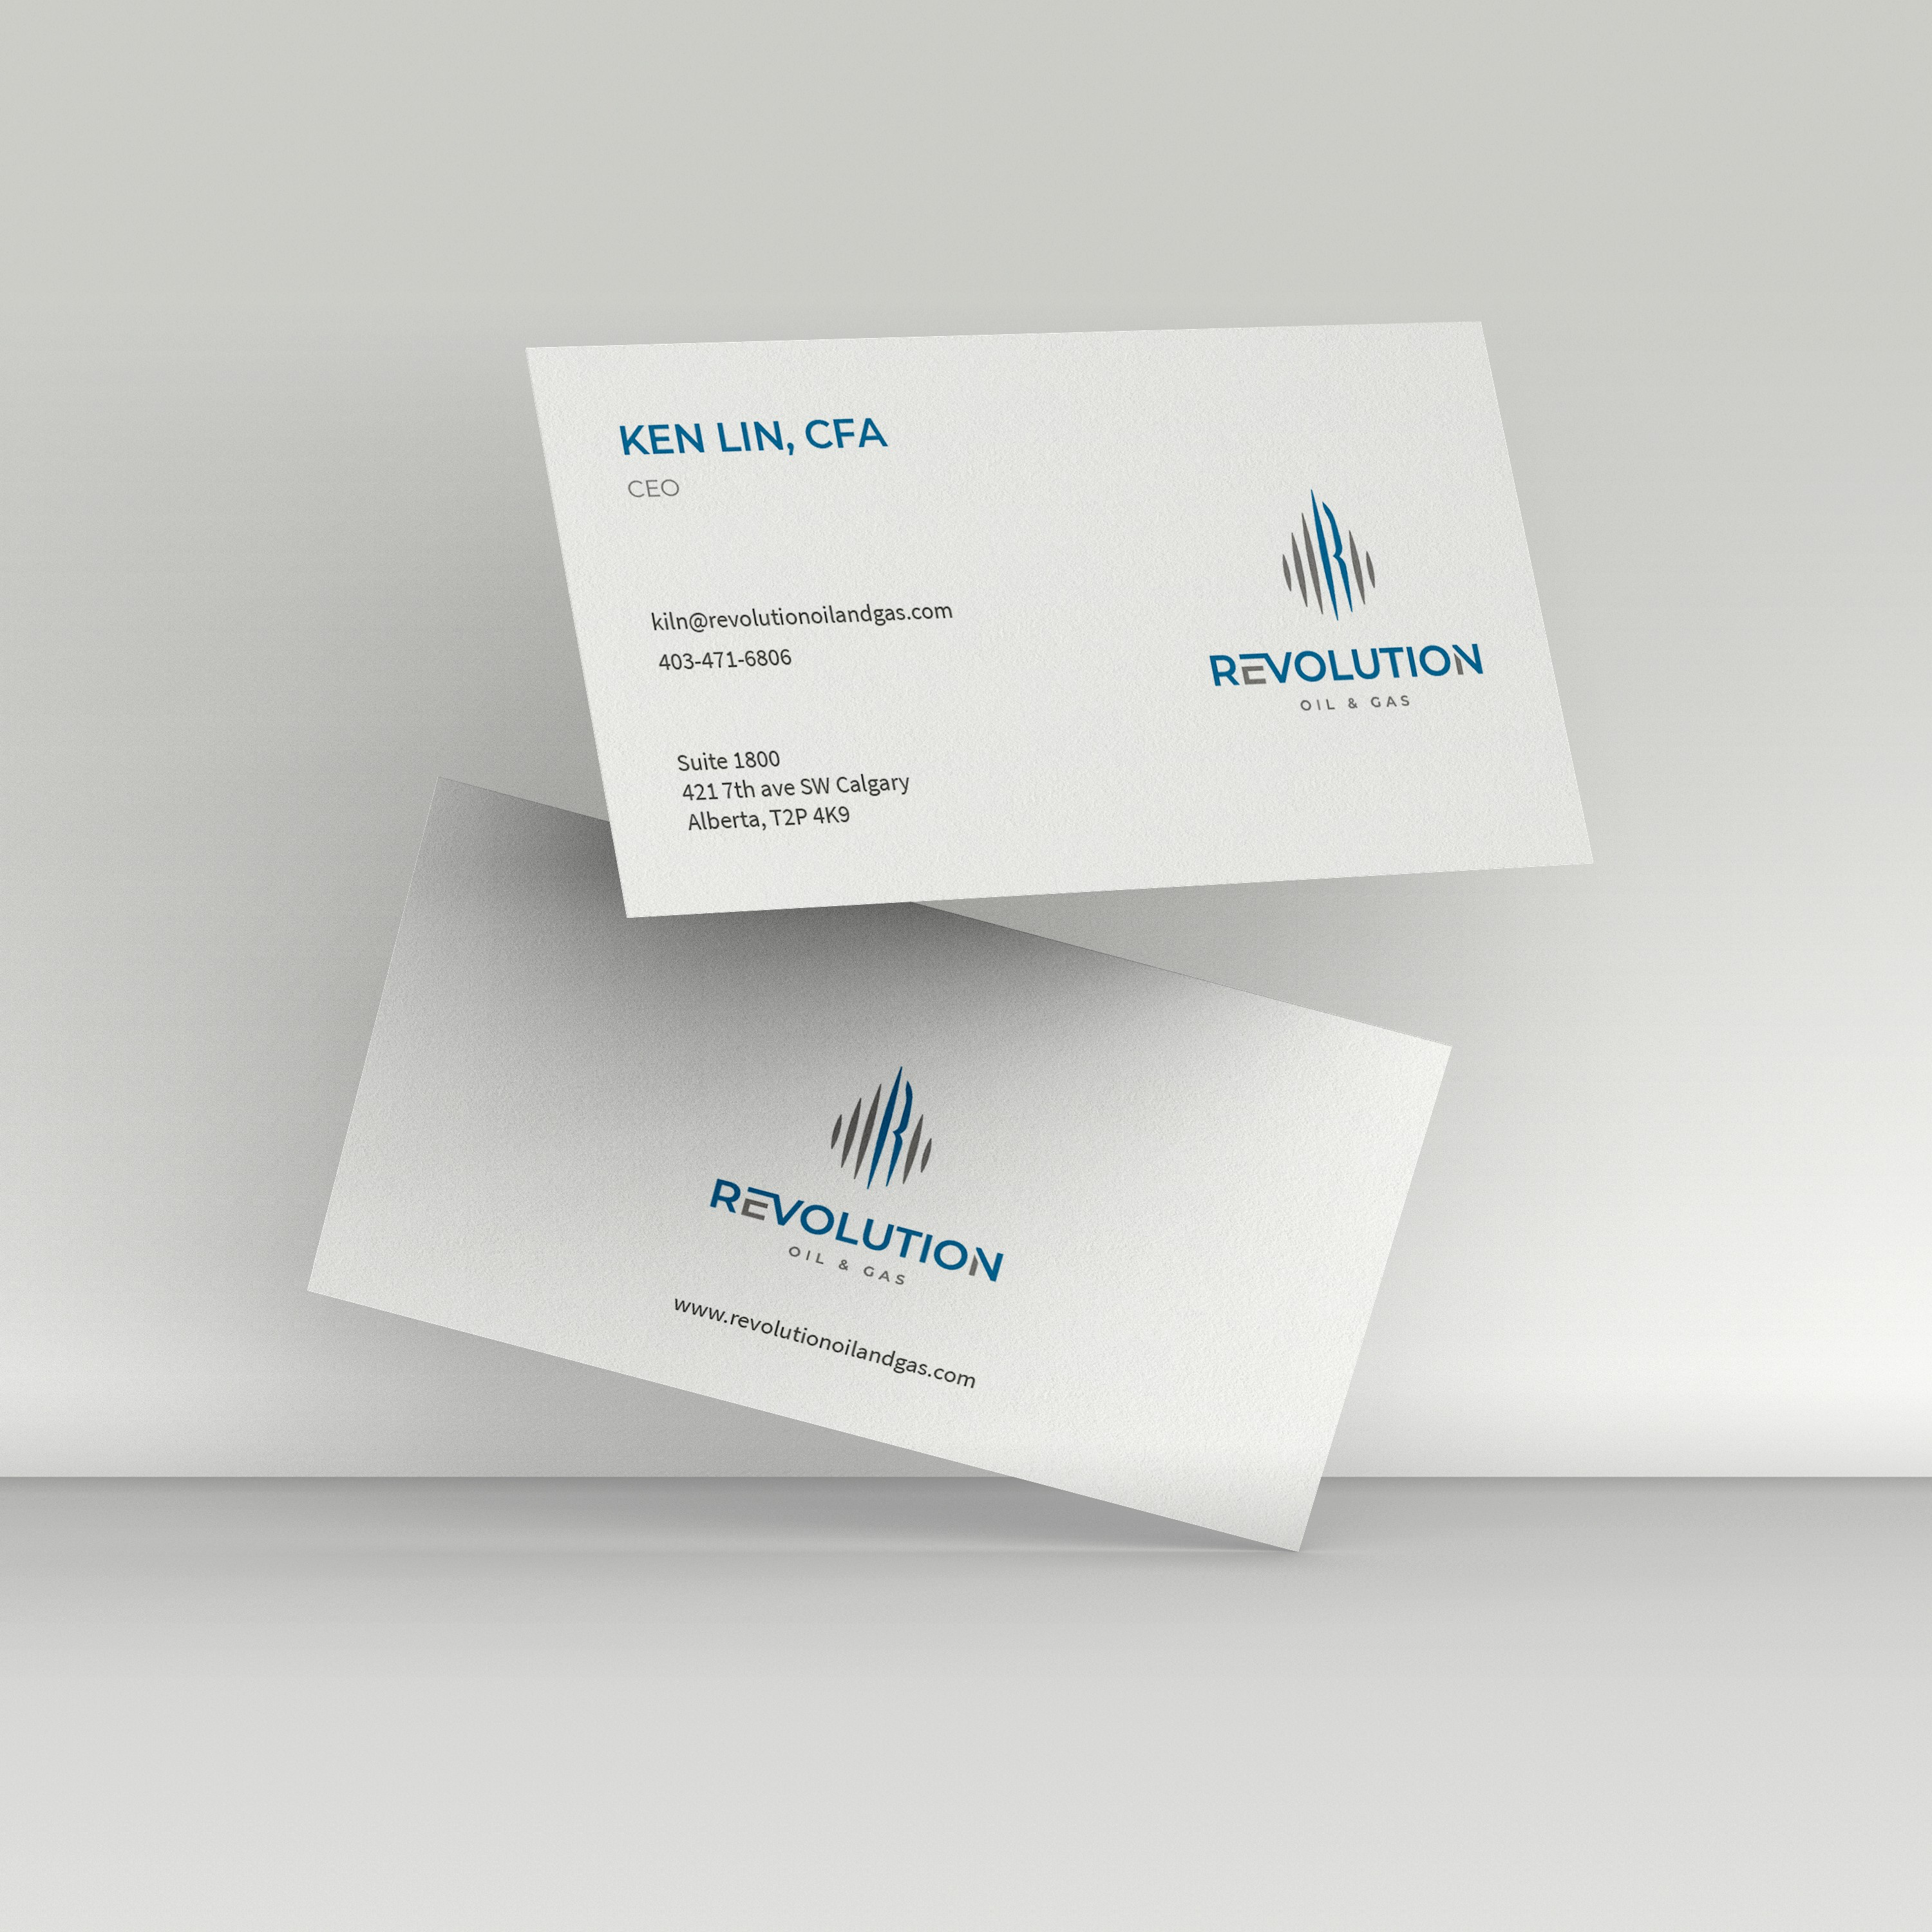 Business Card design for Revolution Oil & Gas